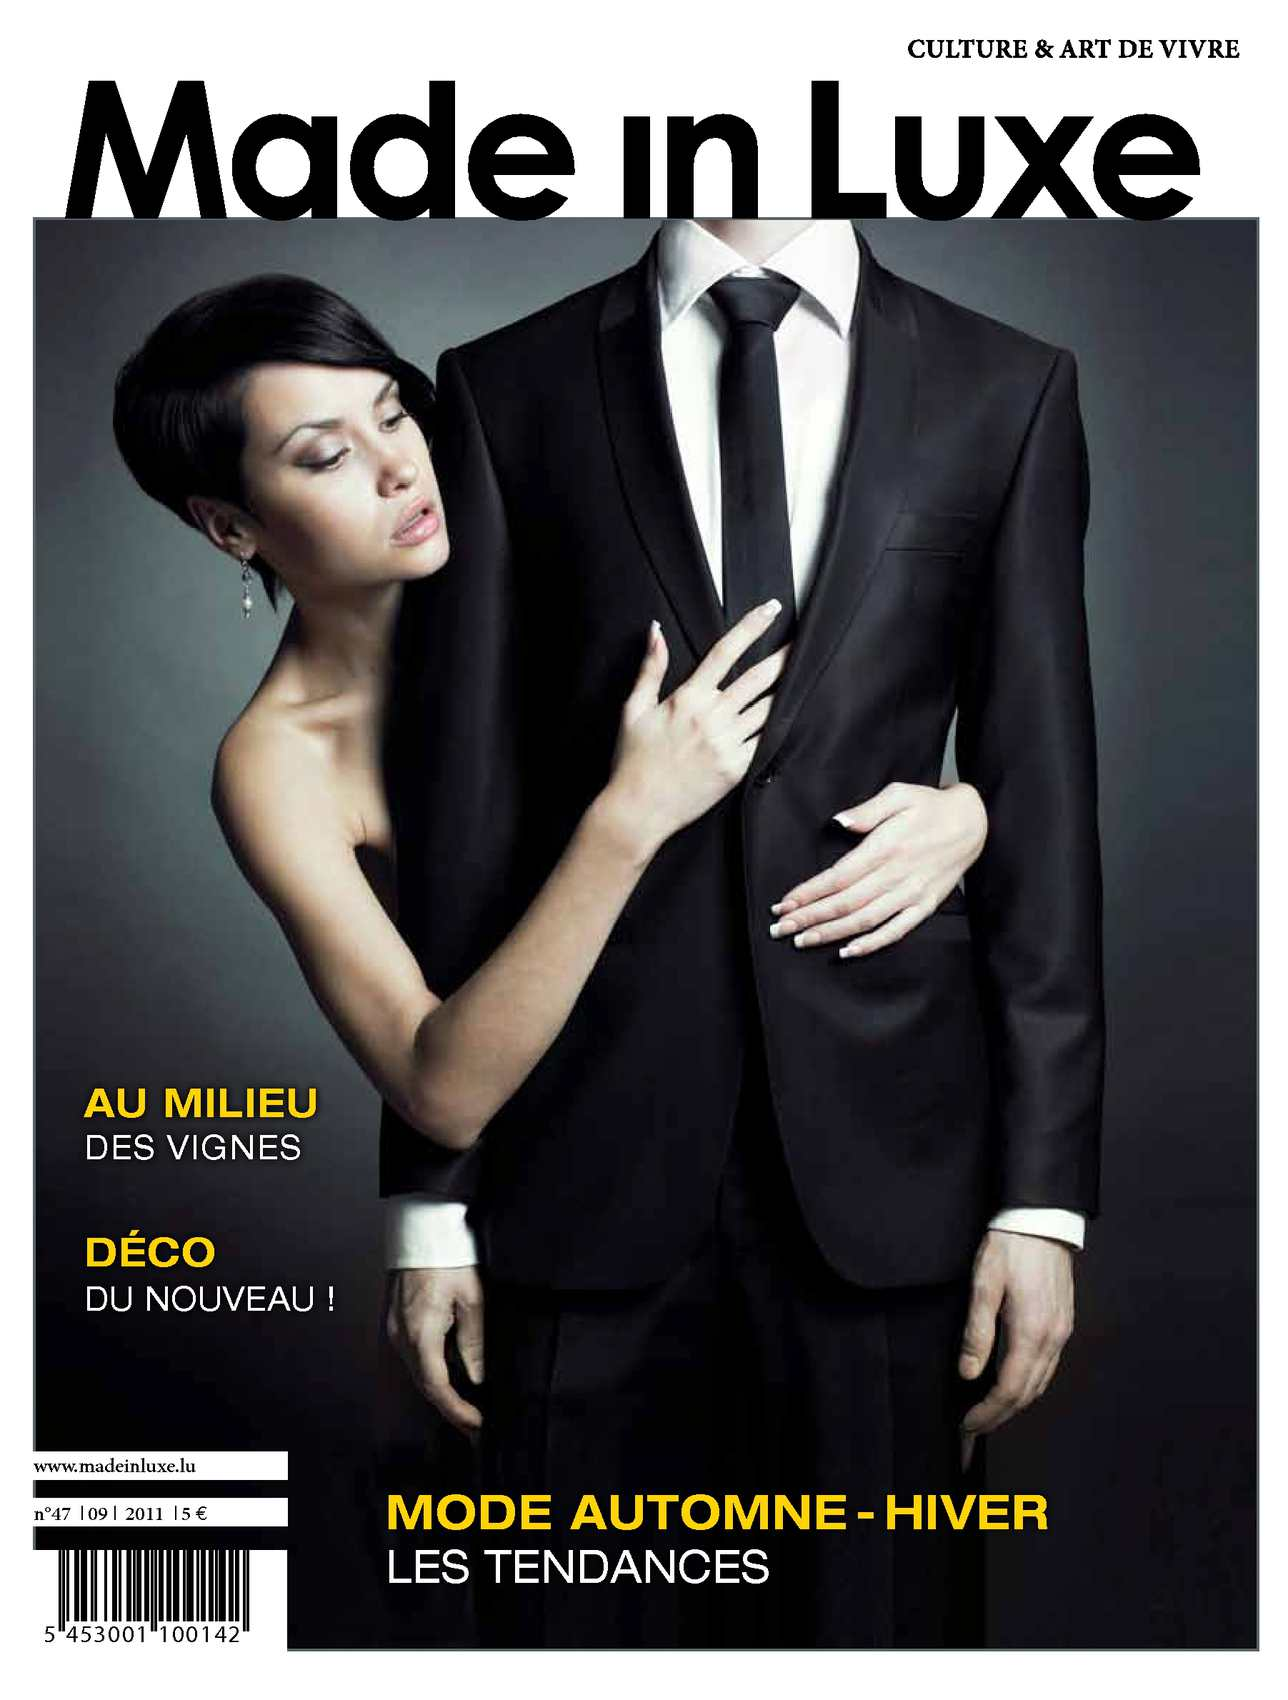 Calam o made in luxe 47 septembre 2011 for Kichechef luxembourg meuble